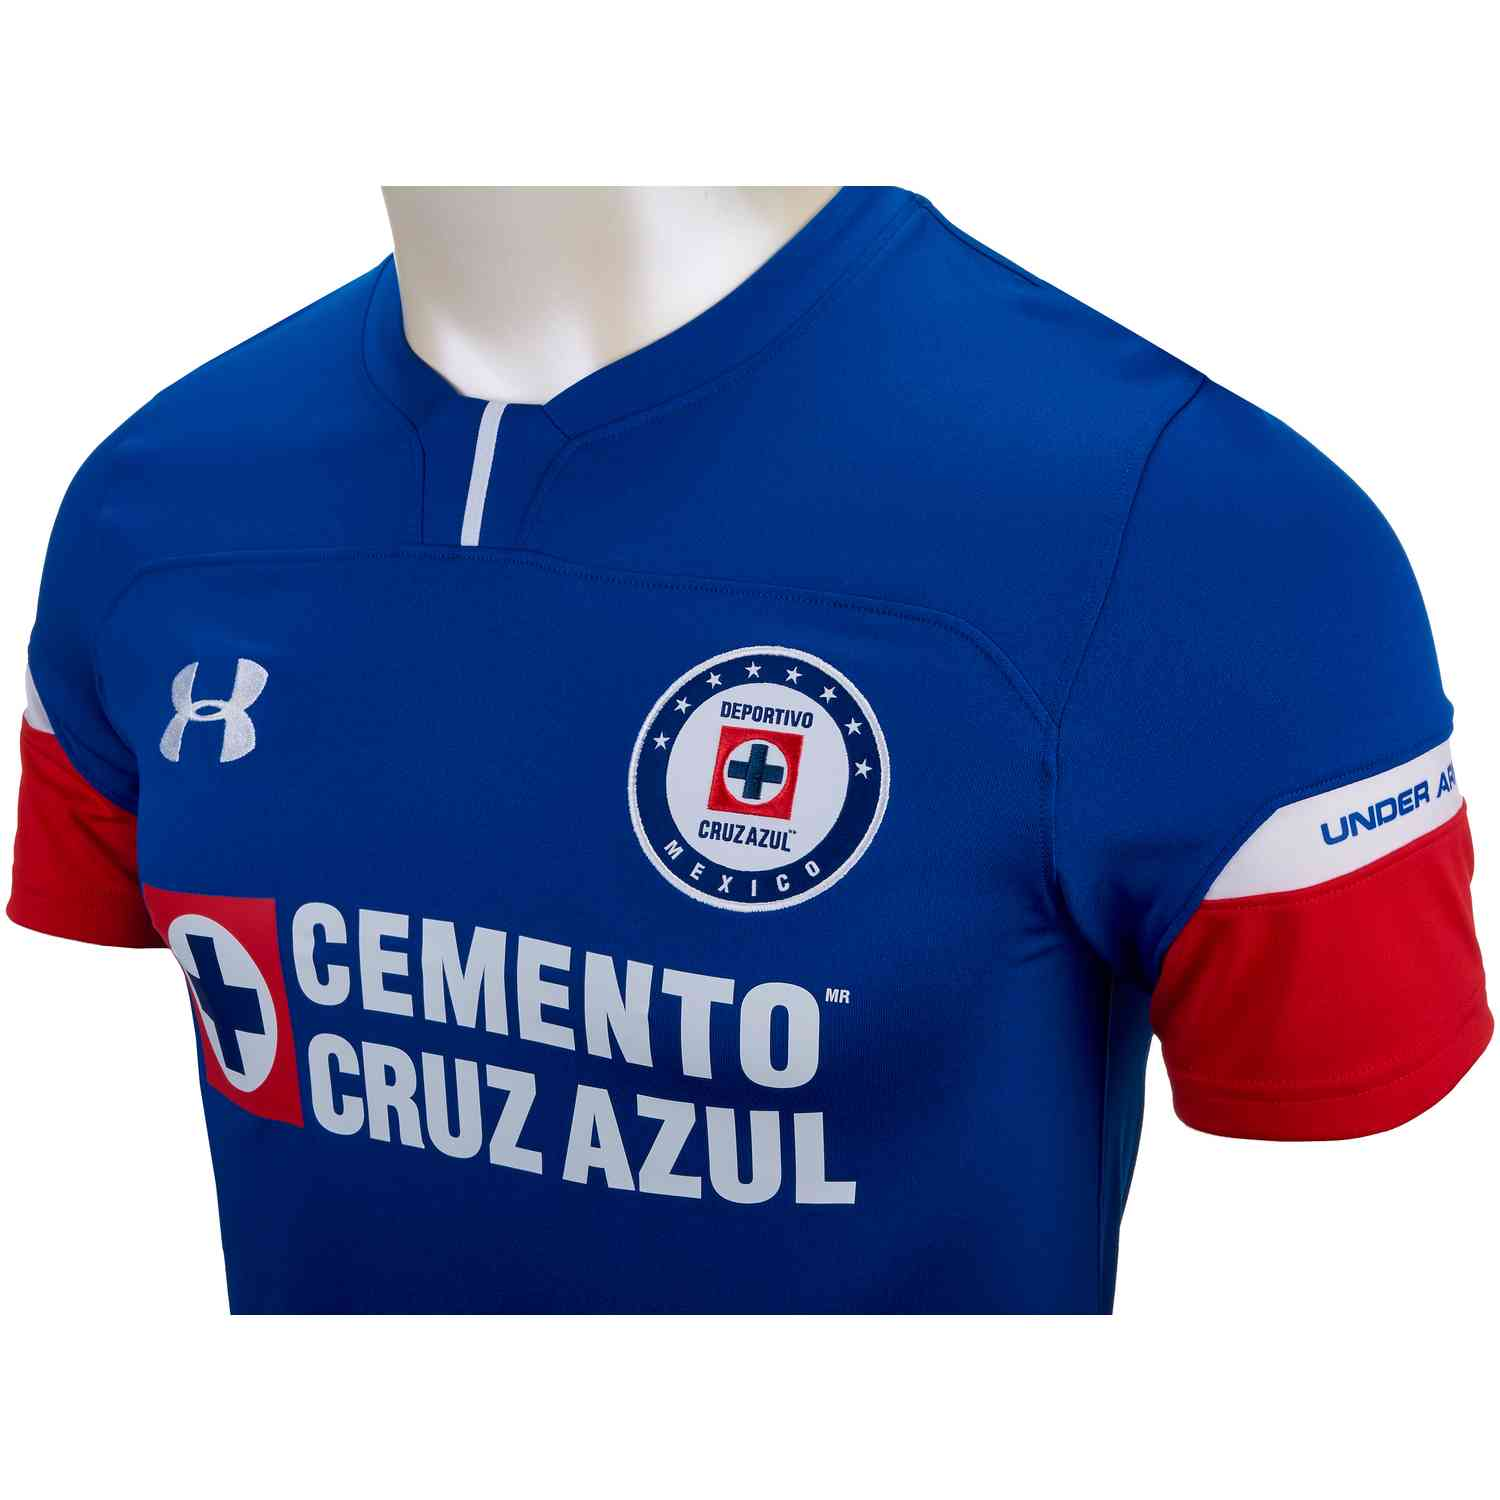 ae9b87af8 Under Armour Cruz Azul Home Jersey 2018-19 - SoccerPro